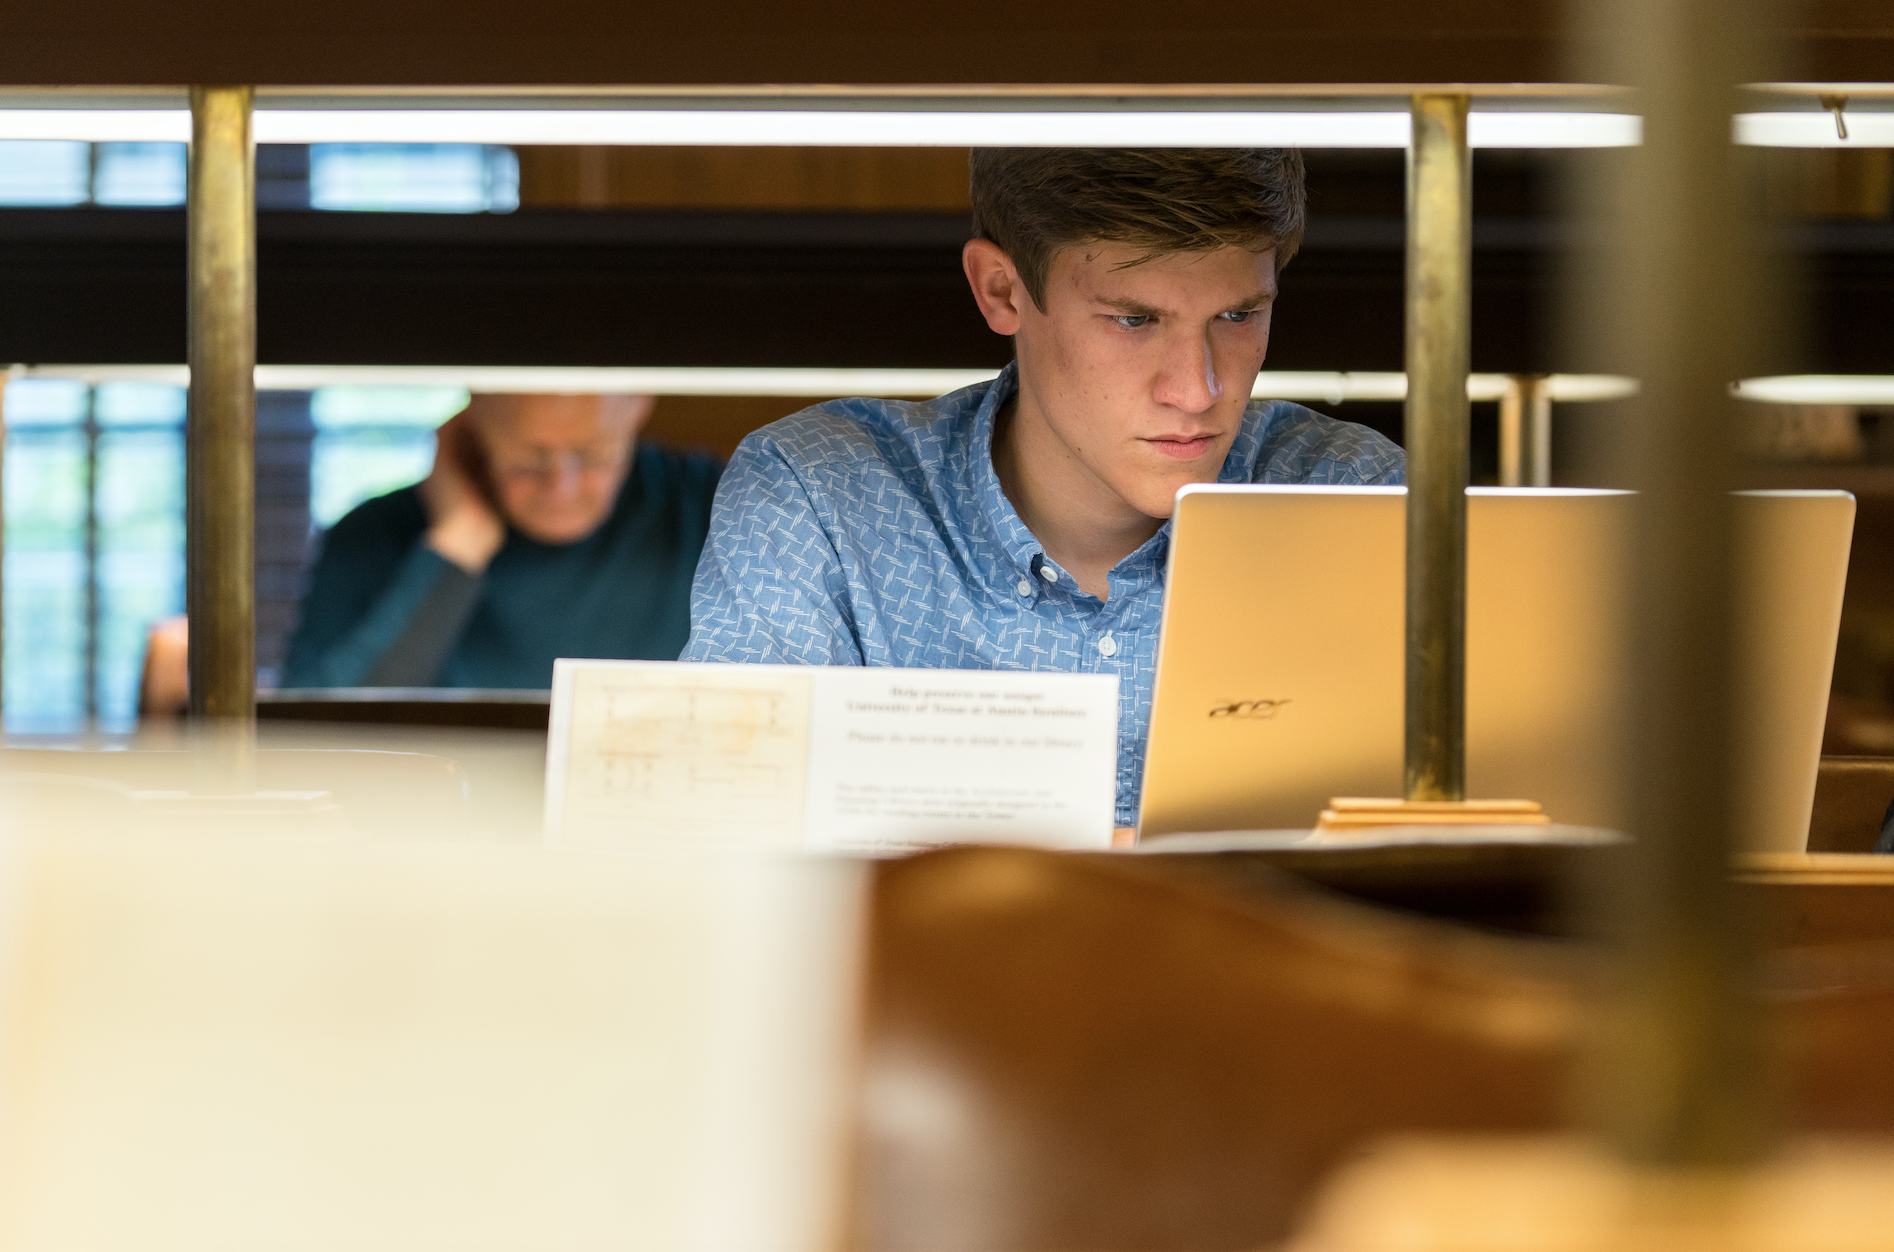 A UT Austin Student Studies in the Campus Library